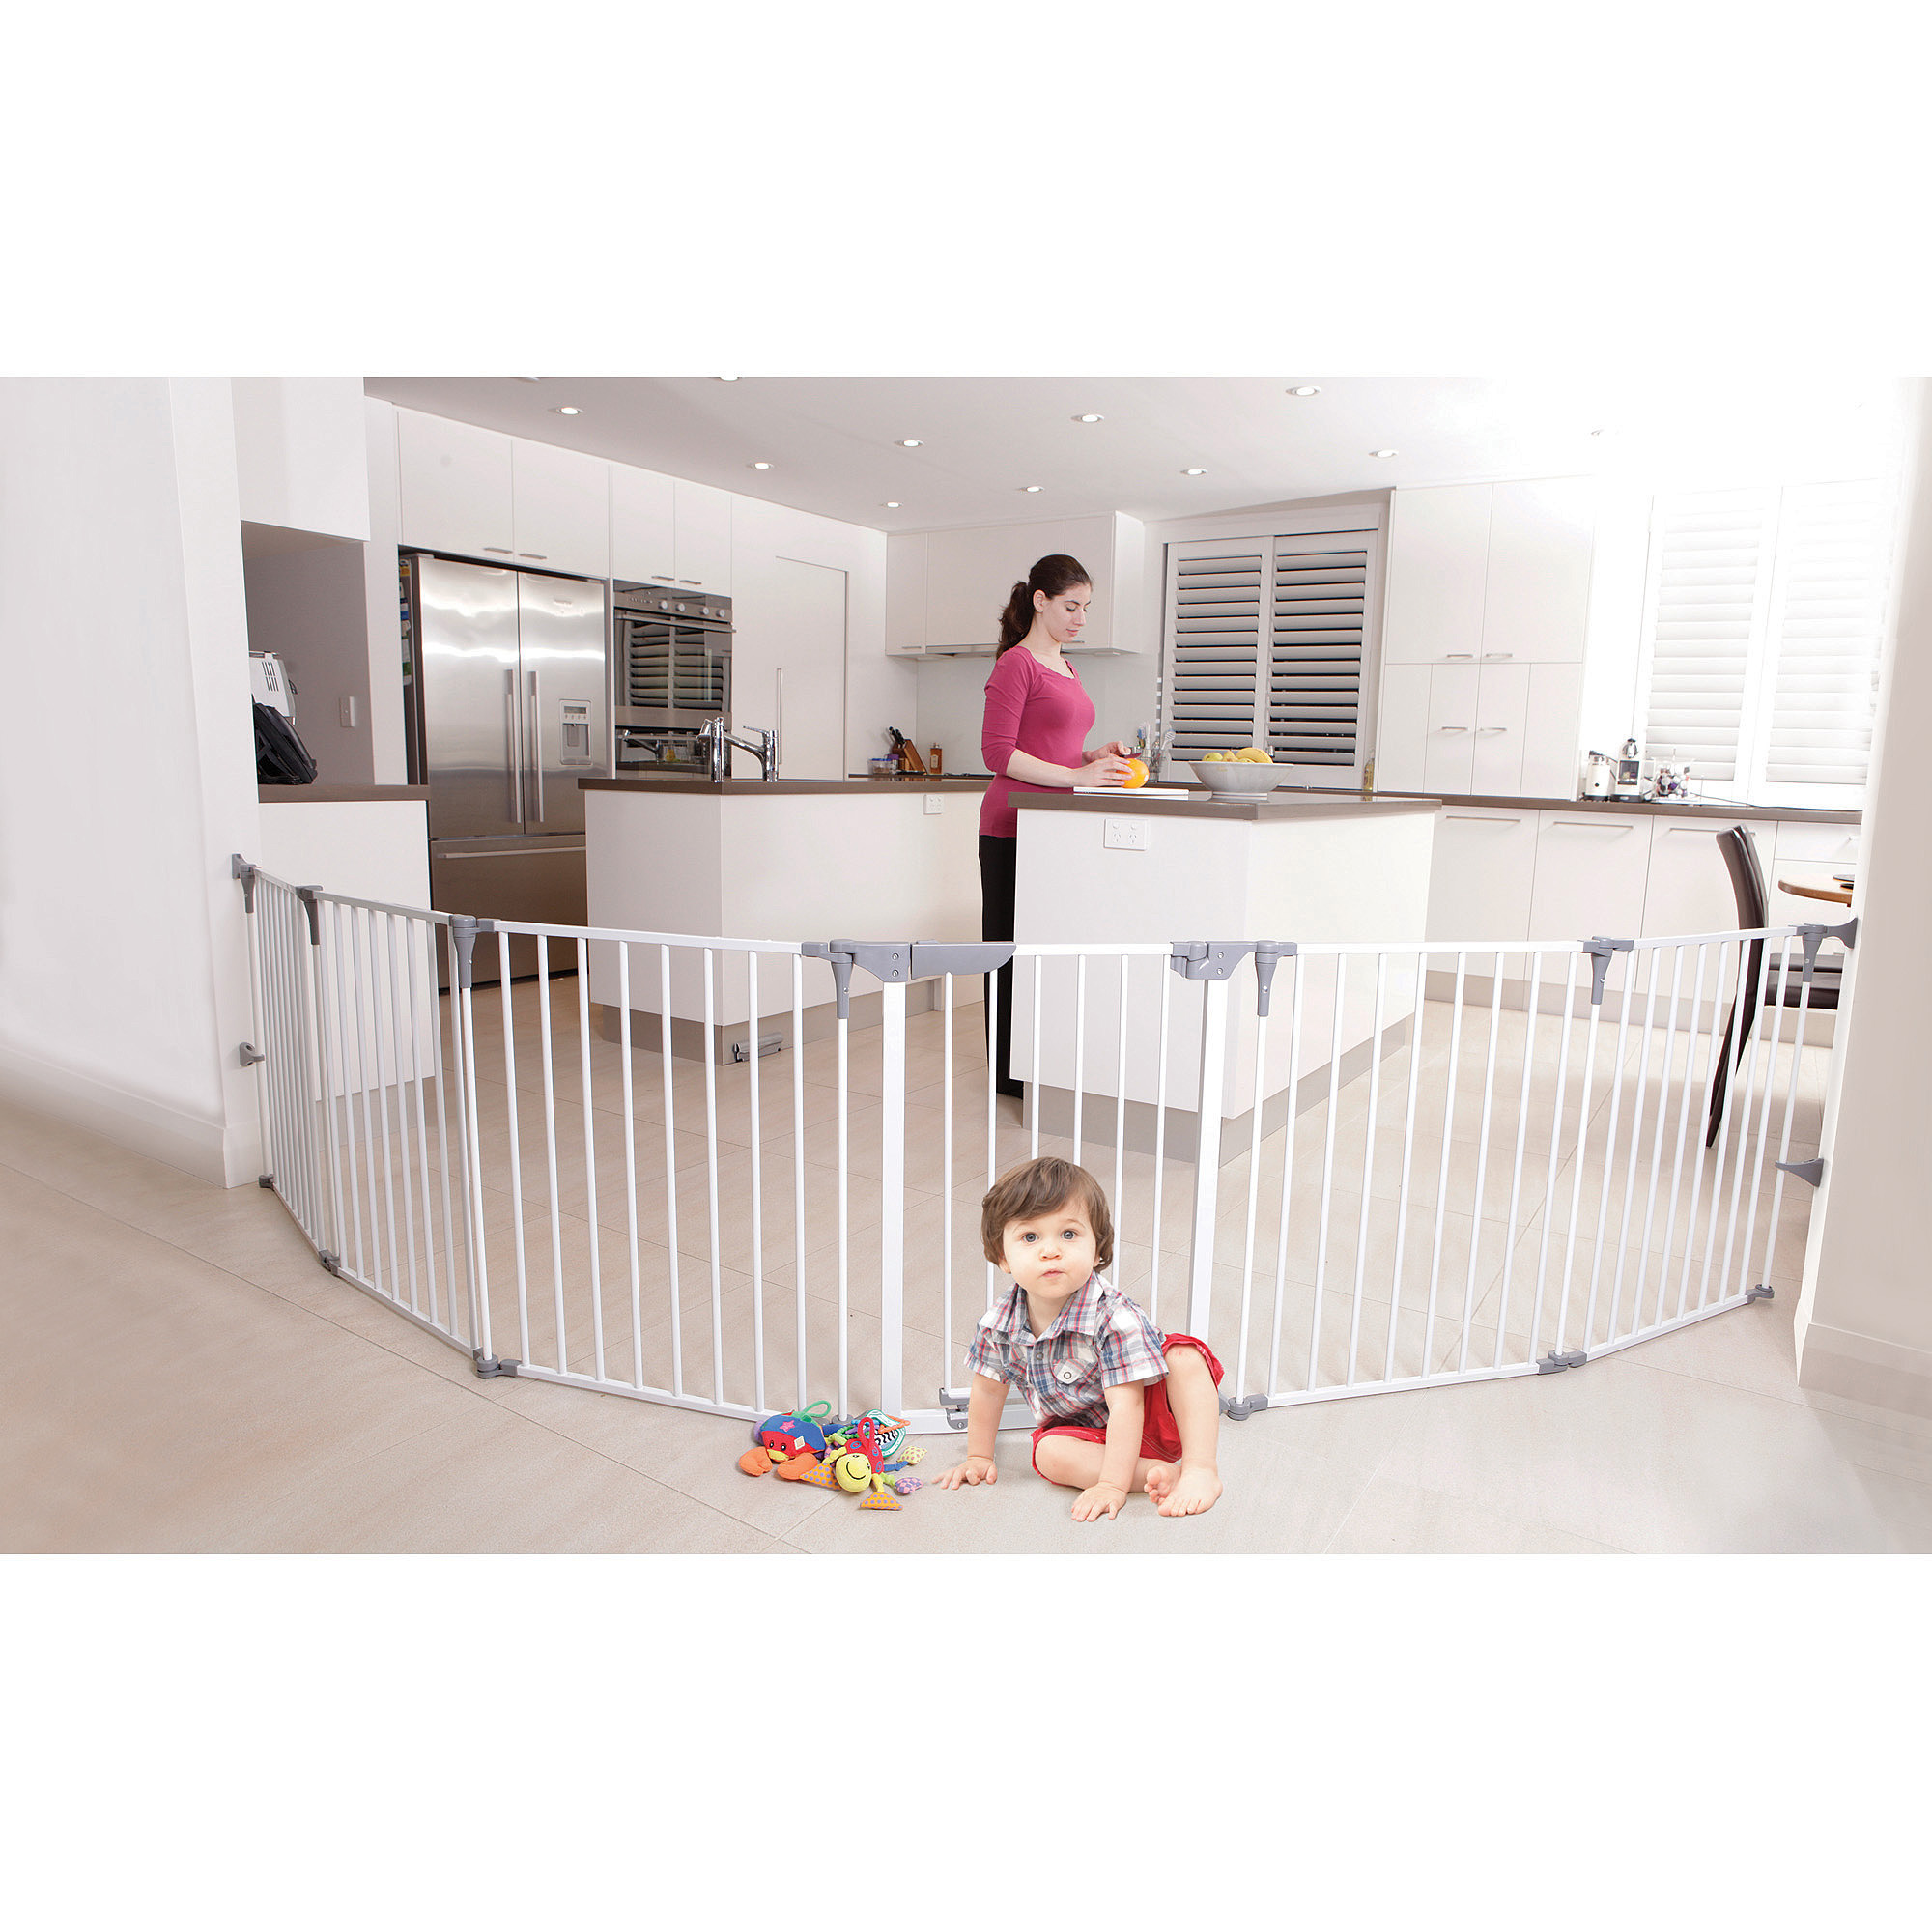 Dreambaby® Royale 3-in-1 Converta® Play-Pen Gate fits up to 151